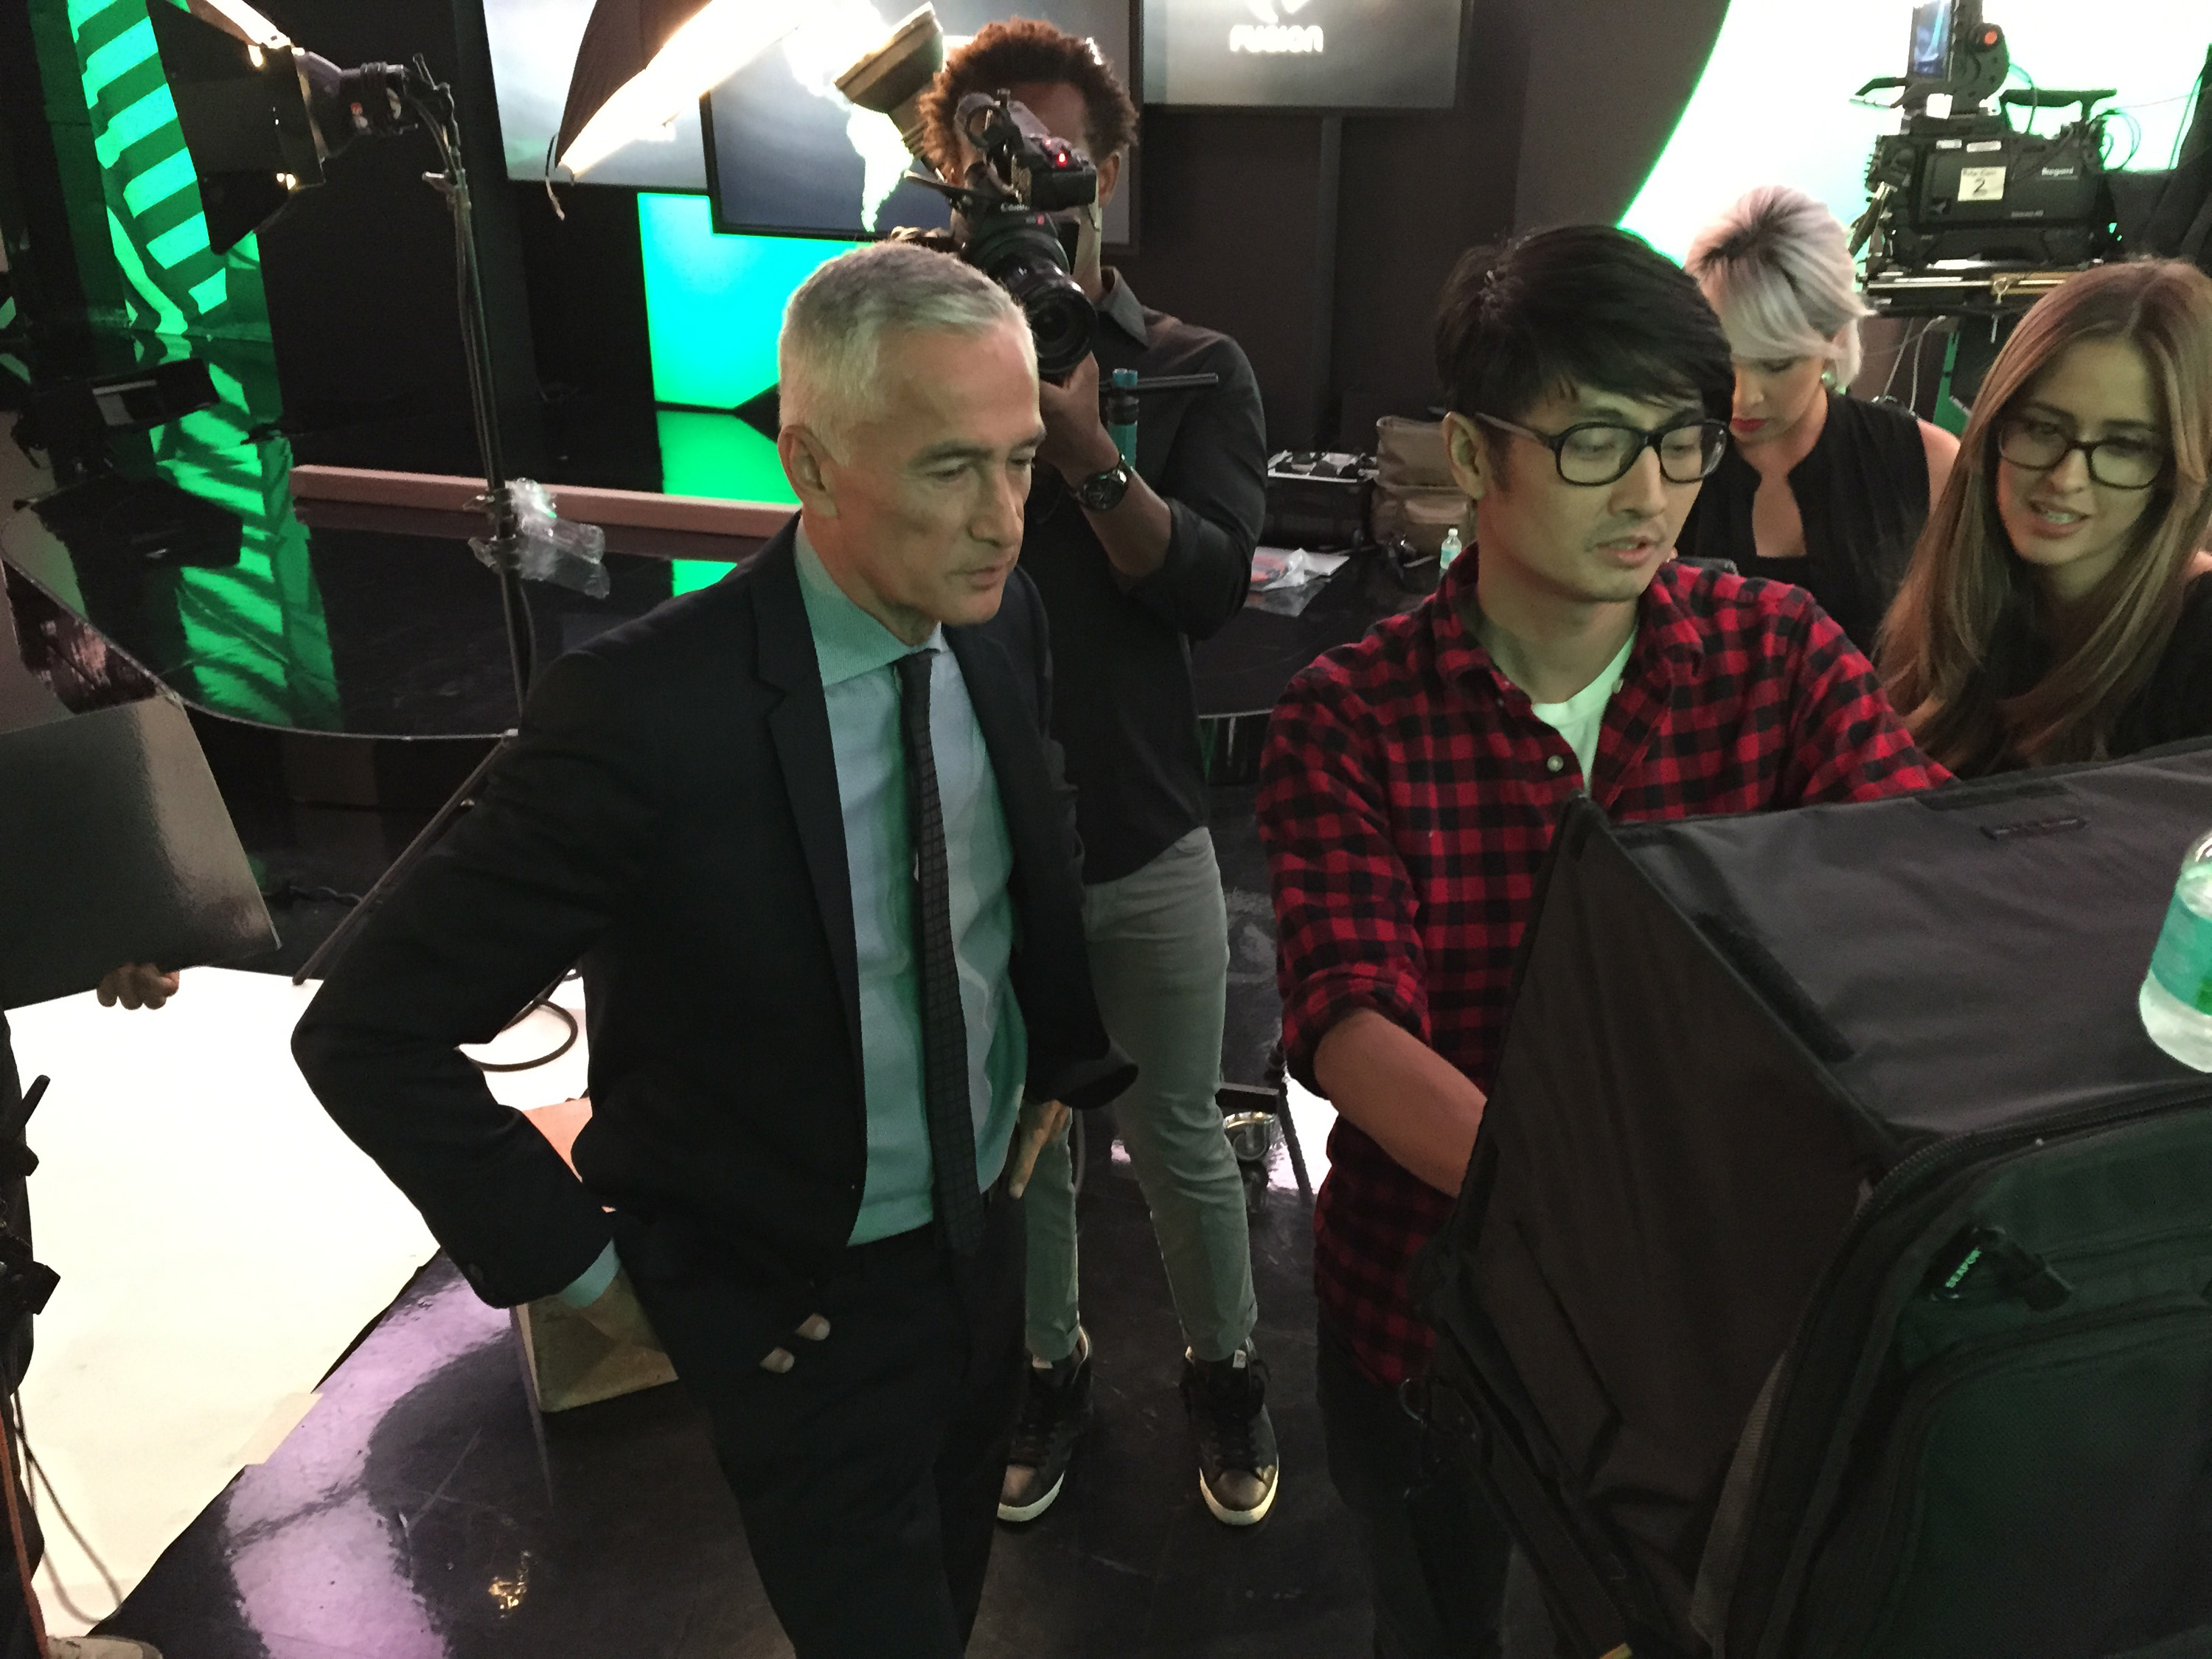 Photographer Sebastian Kim and Mexican- American journalist and author Jorge Ramos photographed on Thursday, March 19, 2015 in Doral, Florida for TIME.